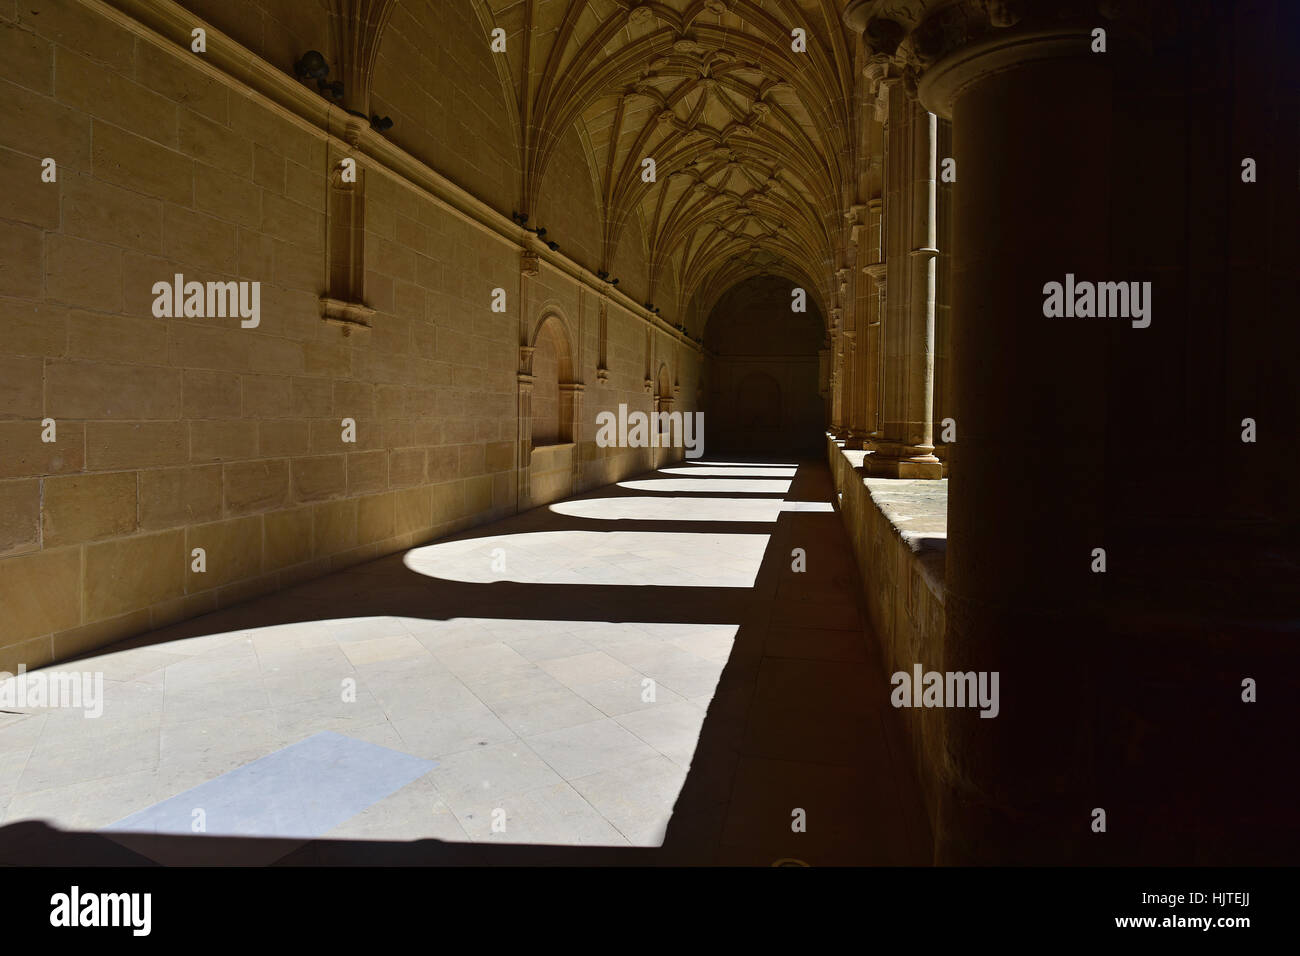 Spanish Cloister outdoor passageway. - Stock Image